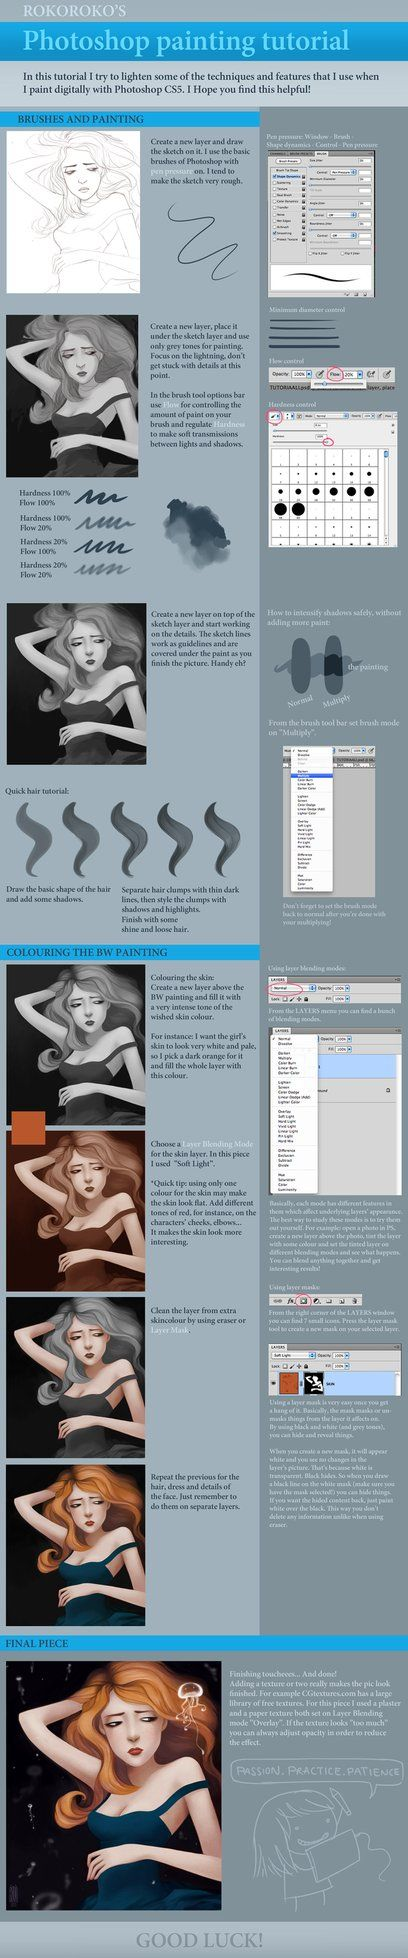 Digital Character Design Tutorial : Best ideas about digital painting tutorials on